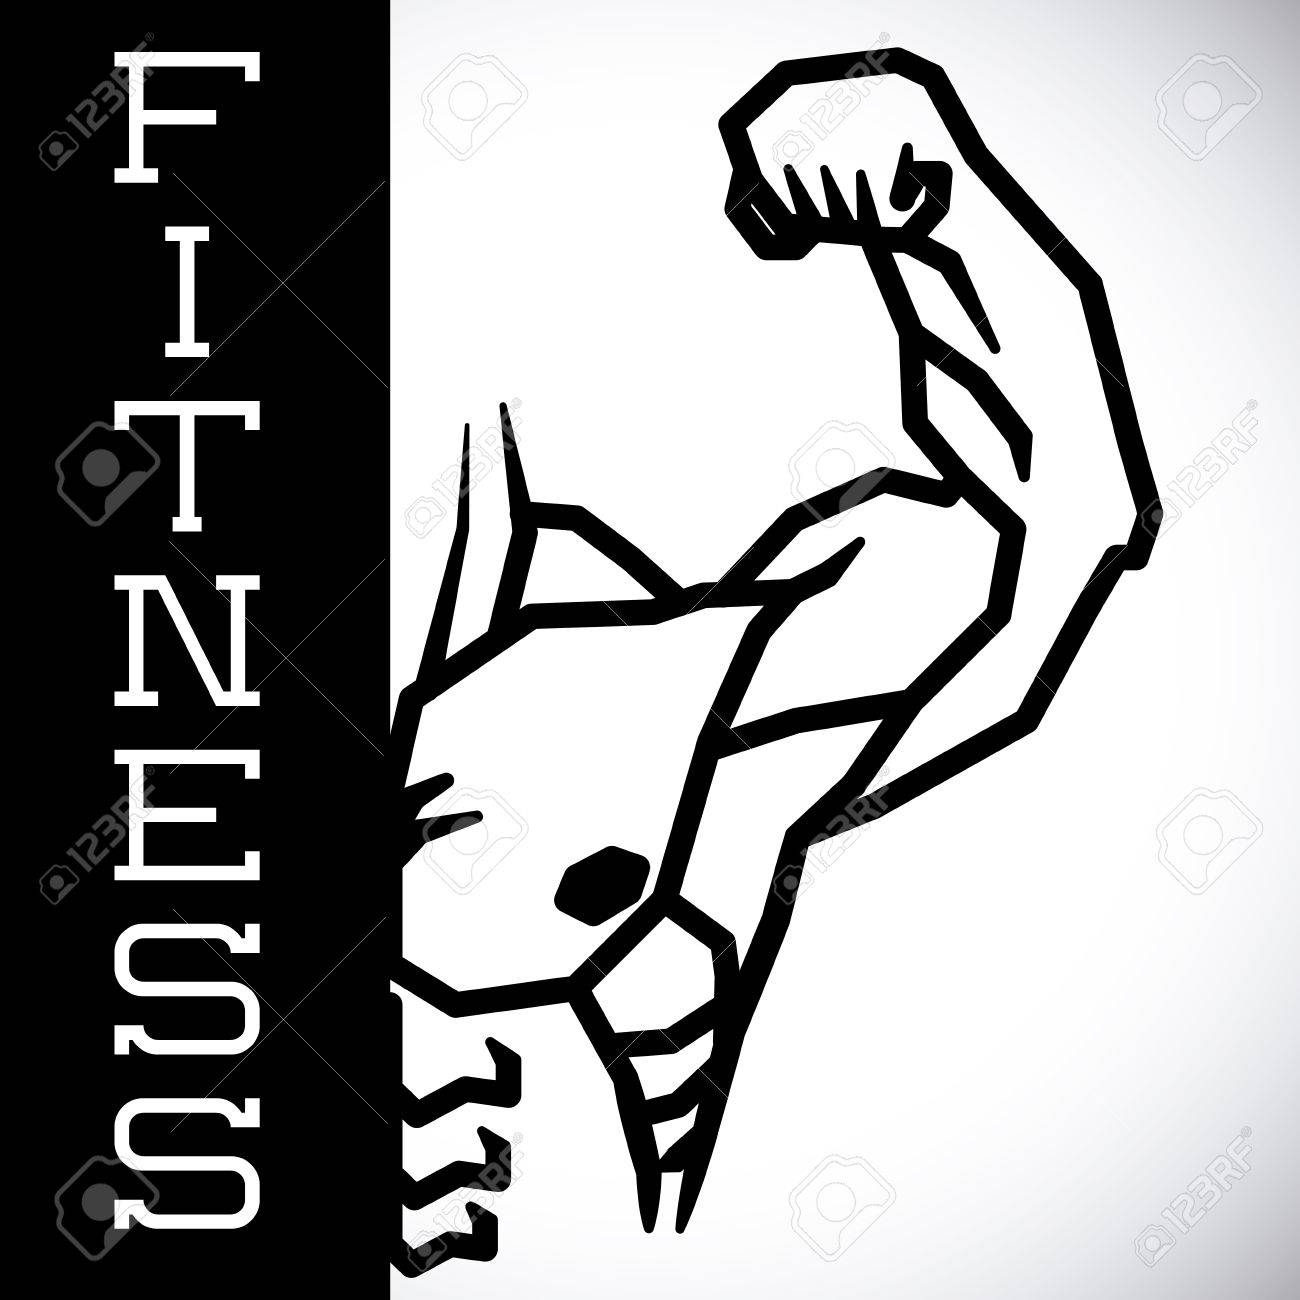 Bodybuilding Graphic Design , Vector Illustration Royalty Free ... for Bodybuilding Graphic Design  242xkb